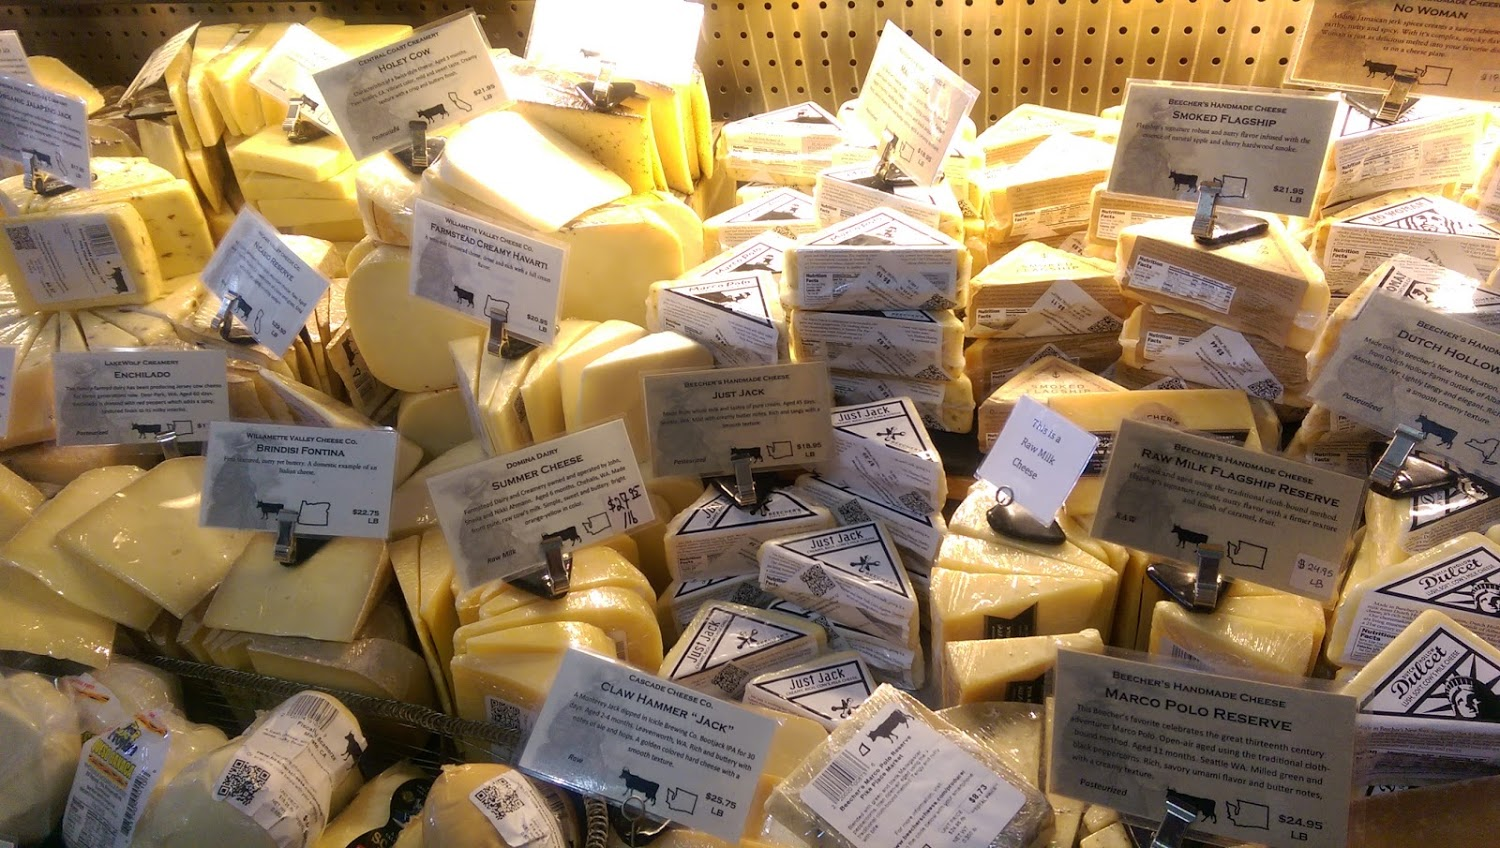 Beecher's Handmade Cheese - Pike Place Market